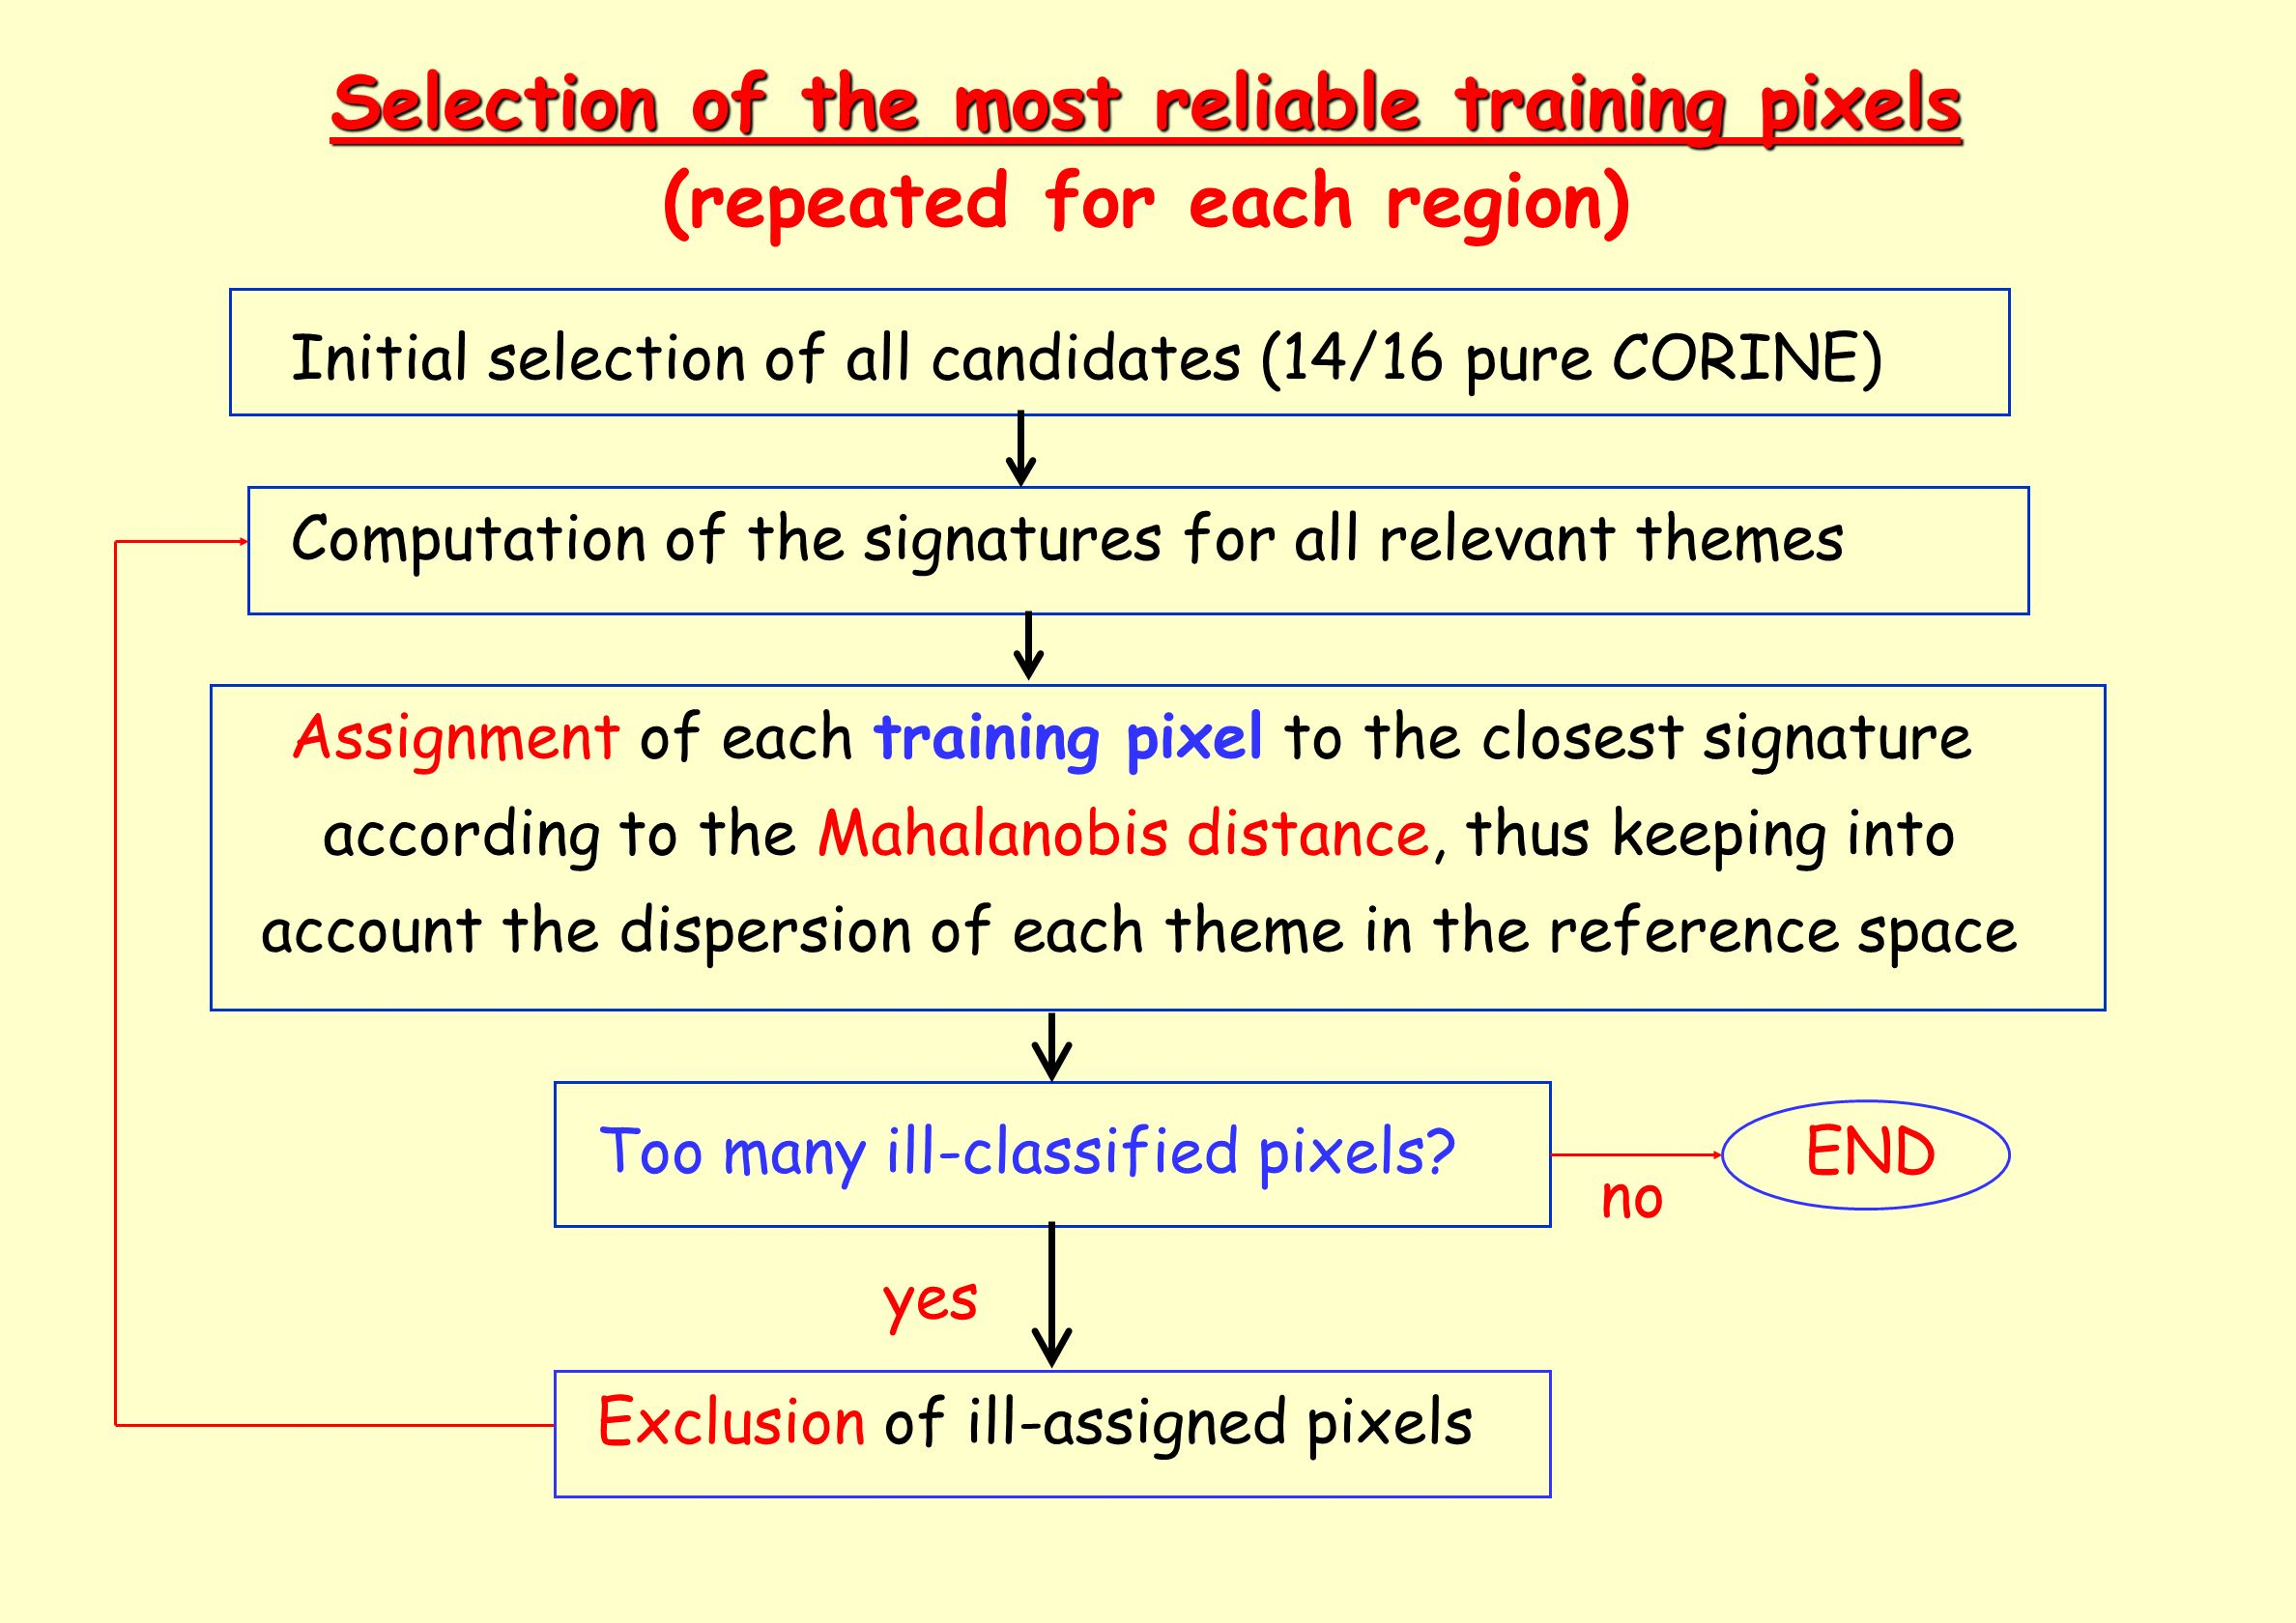 Selection of the most reliable training pixels